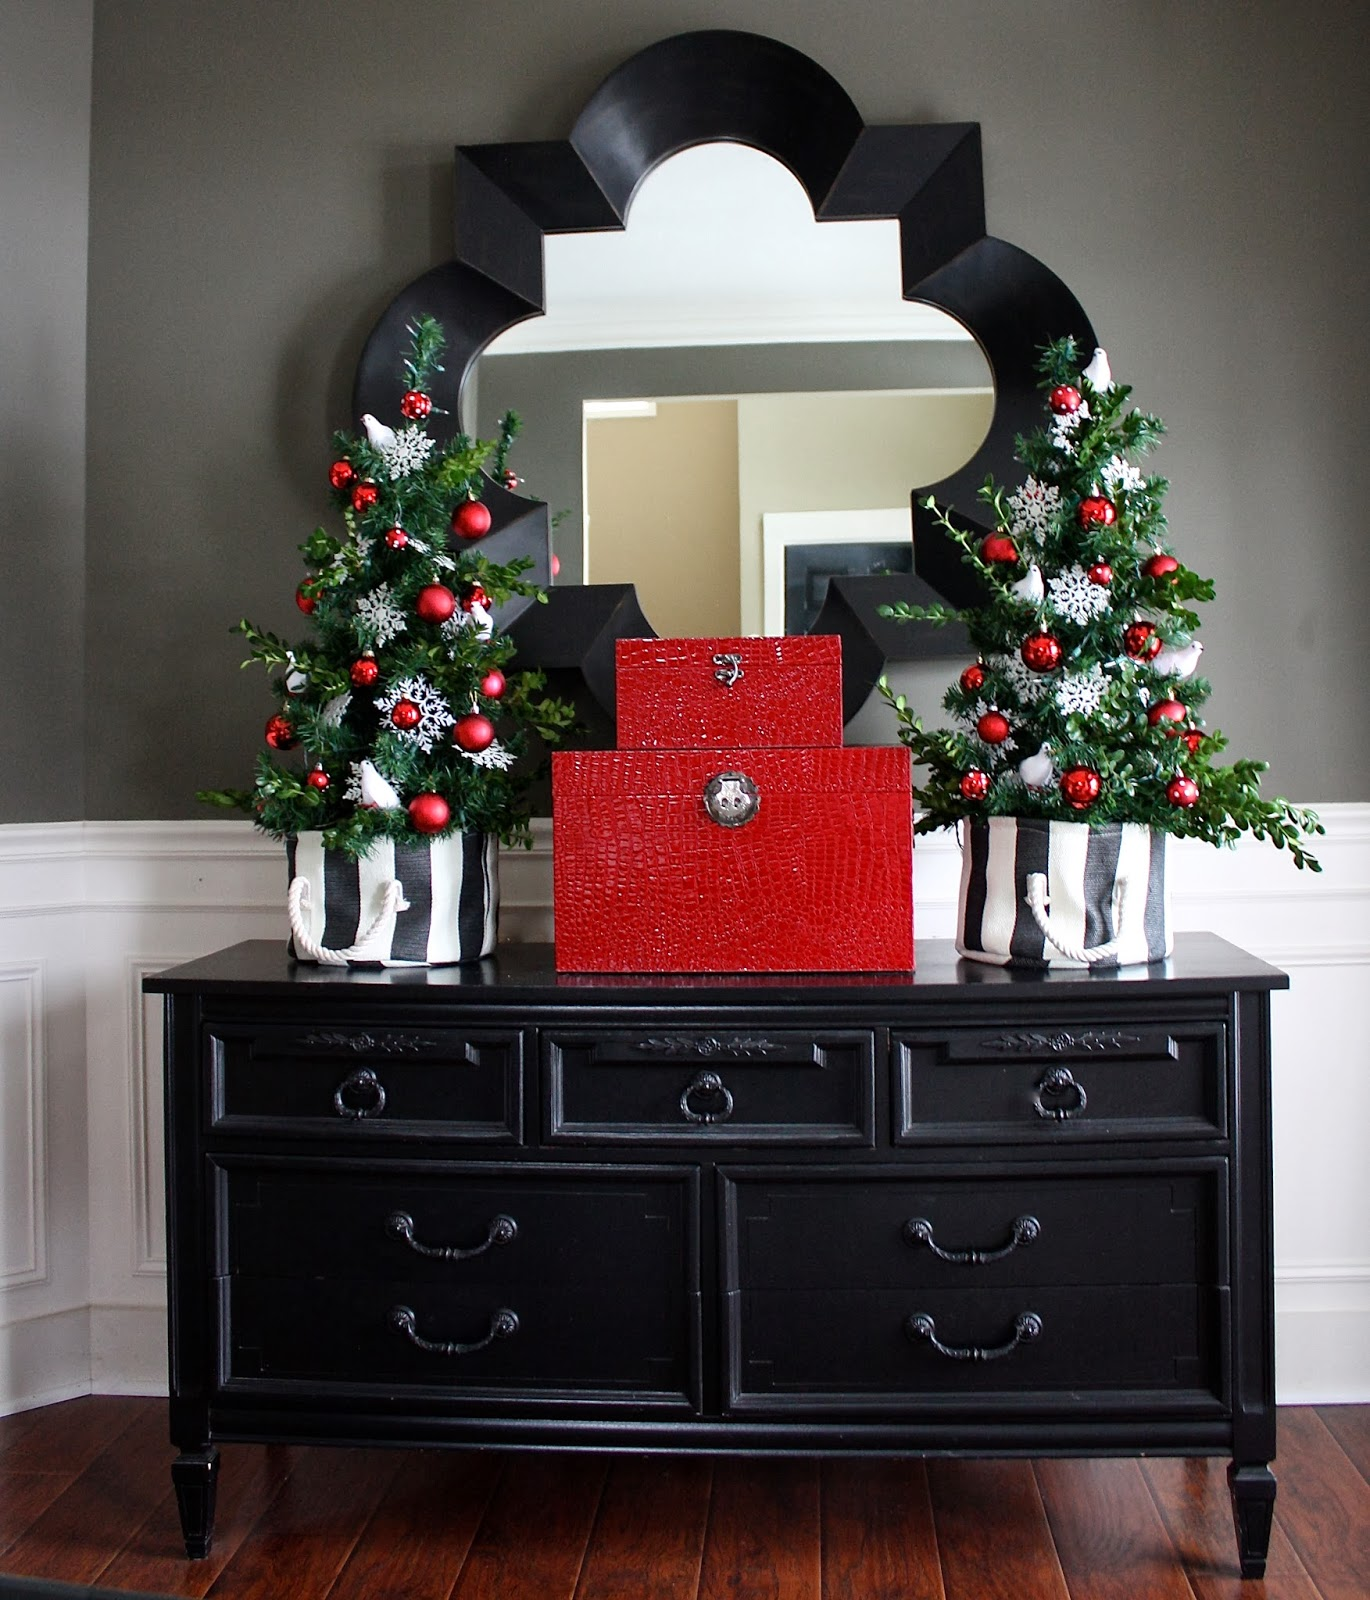 Holiday Home Decorating Ideas living room living room christmas decoration ideas christmas home decor holiday living room decorating ideas christmas Holiday Home Tour 2013